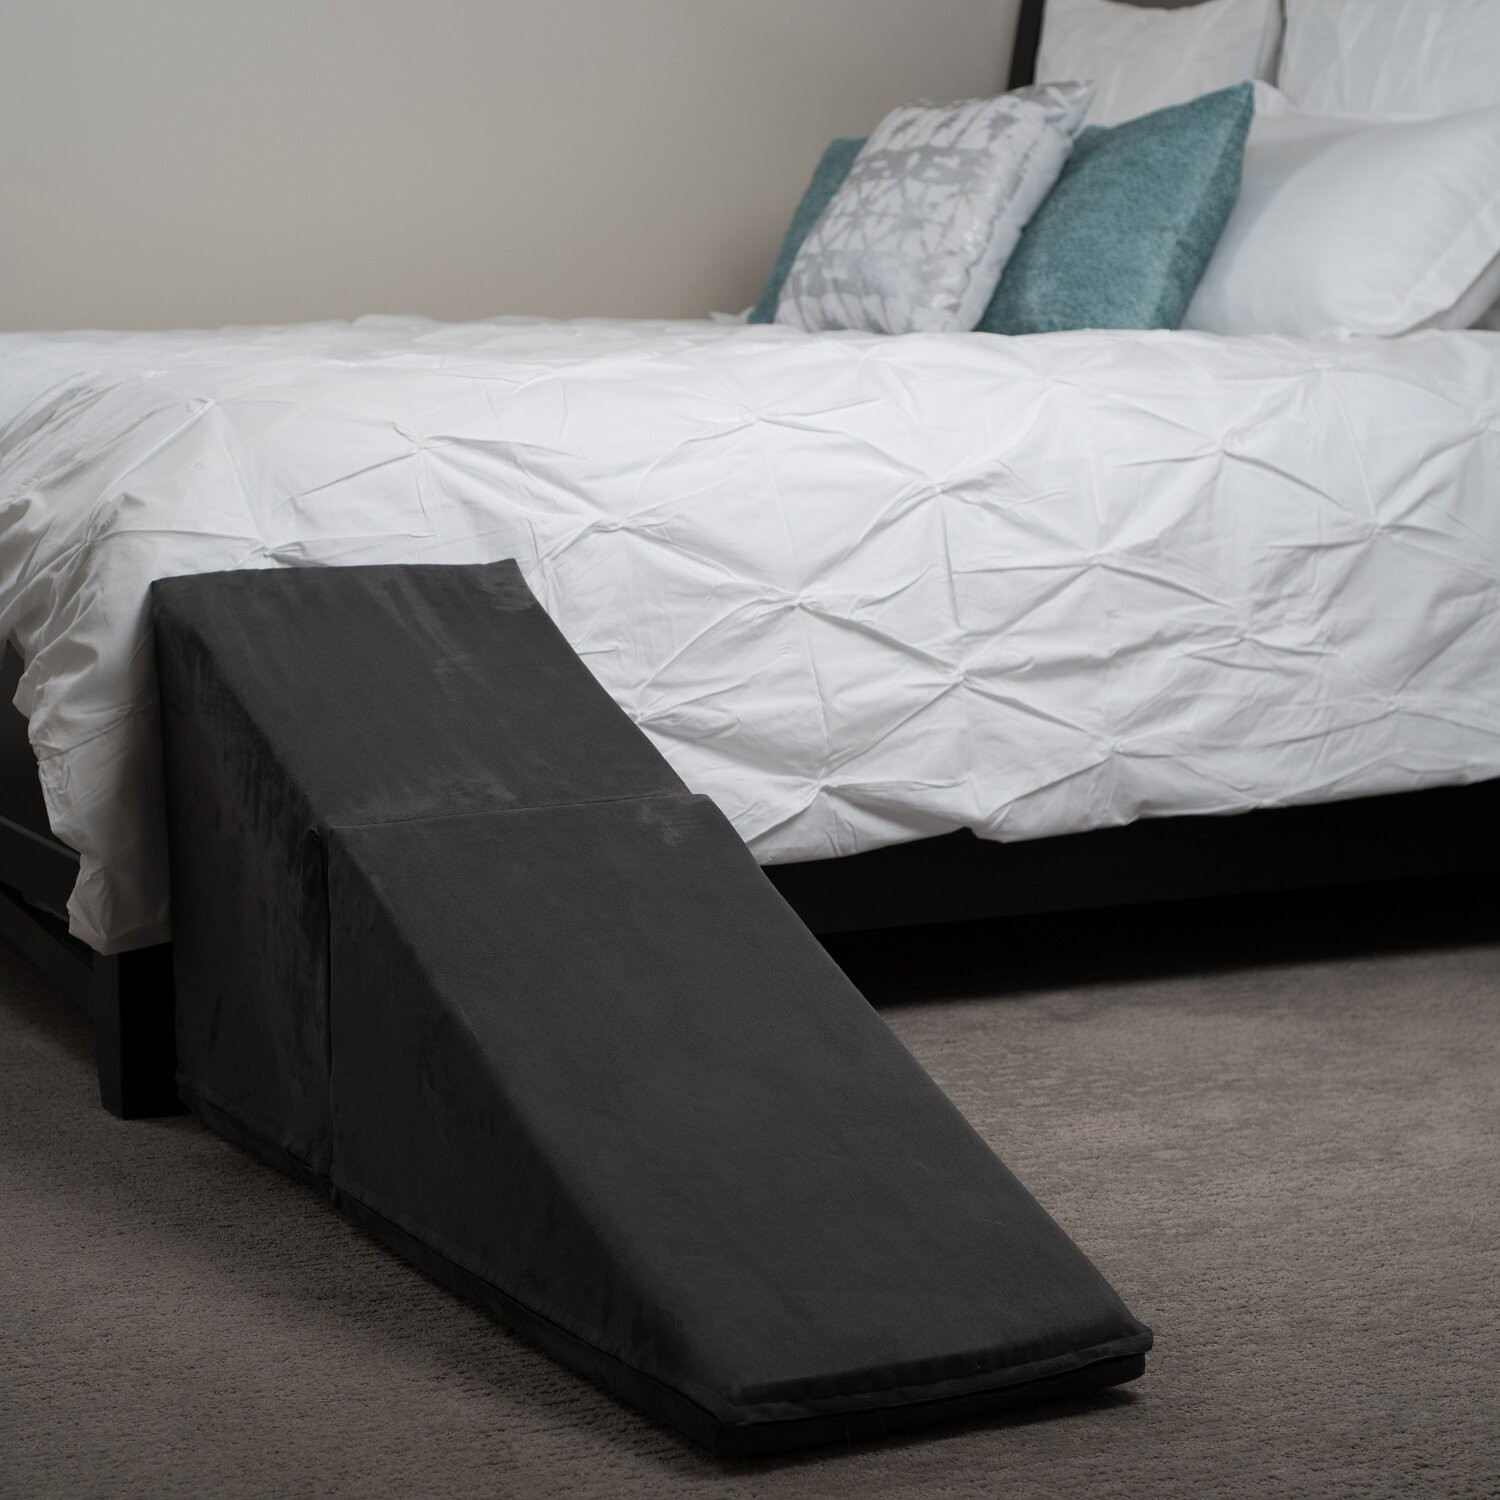 100 Dog Ramps For Beds Ideas On Foter